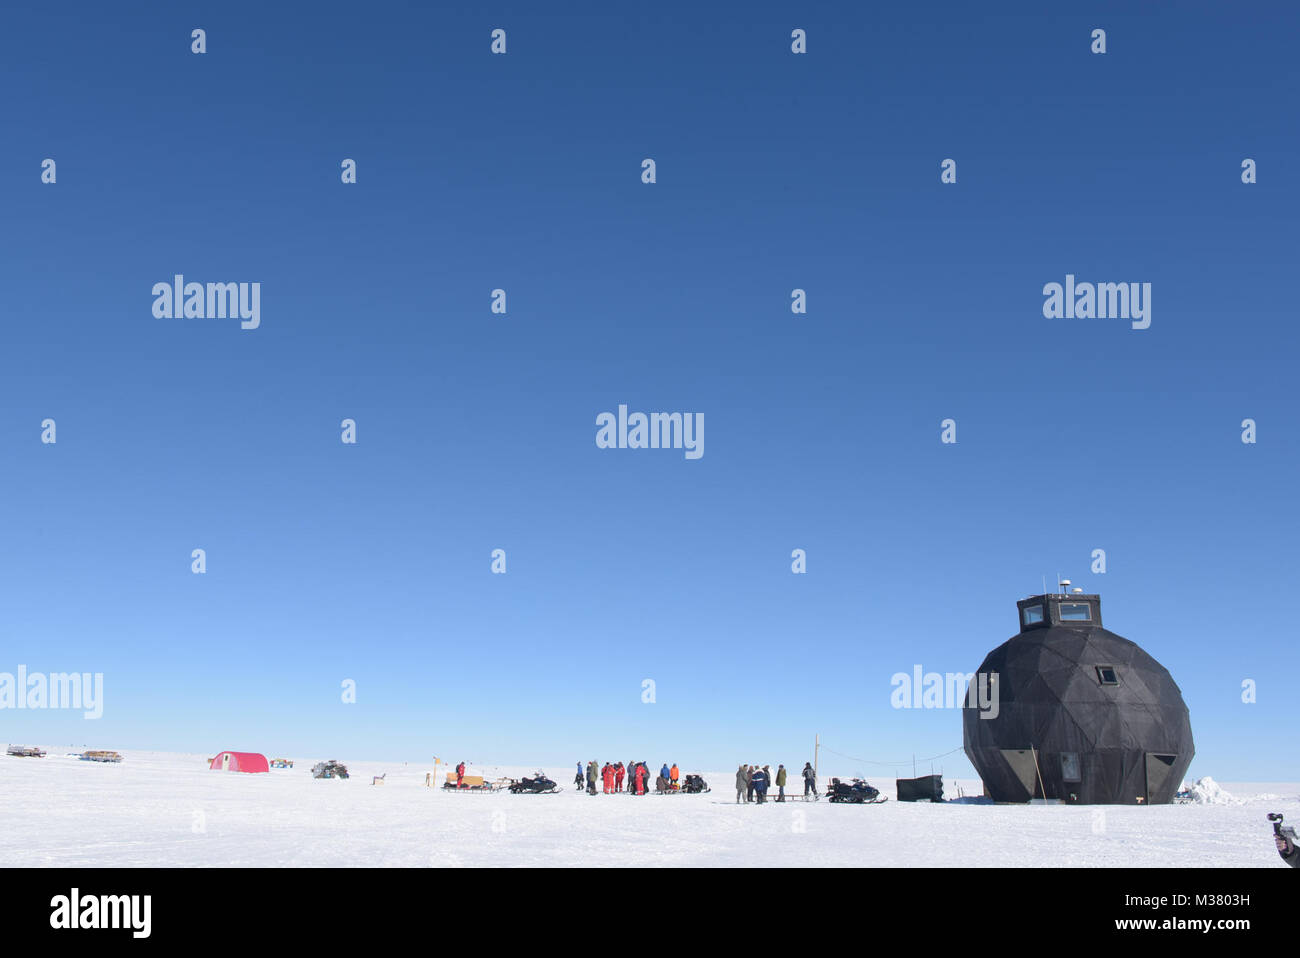 The East Greenland Ice Core Project (GRIP) site, a small research camp, is located in a remote, barren area of the - Stock Image